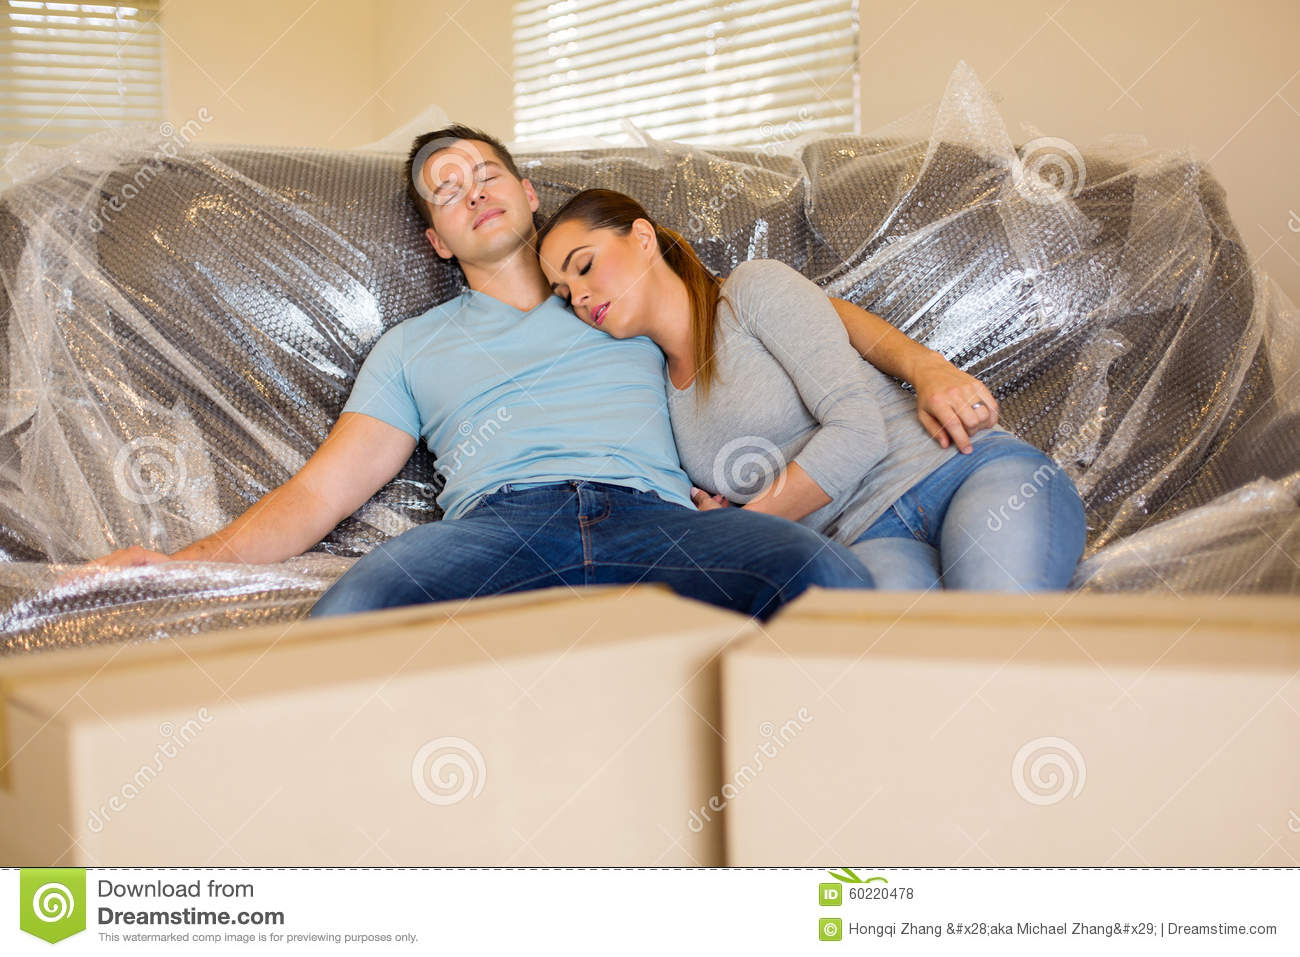 Couple resting on couch